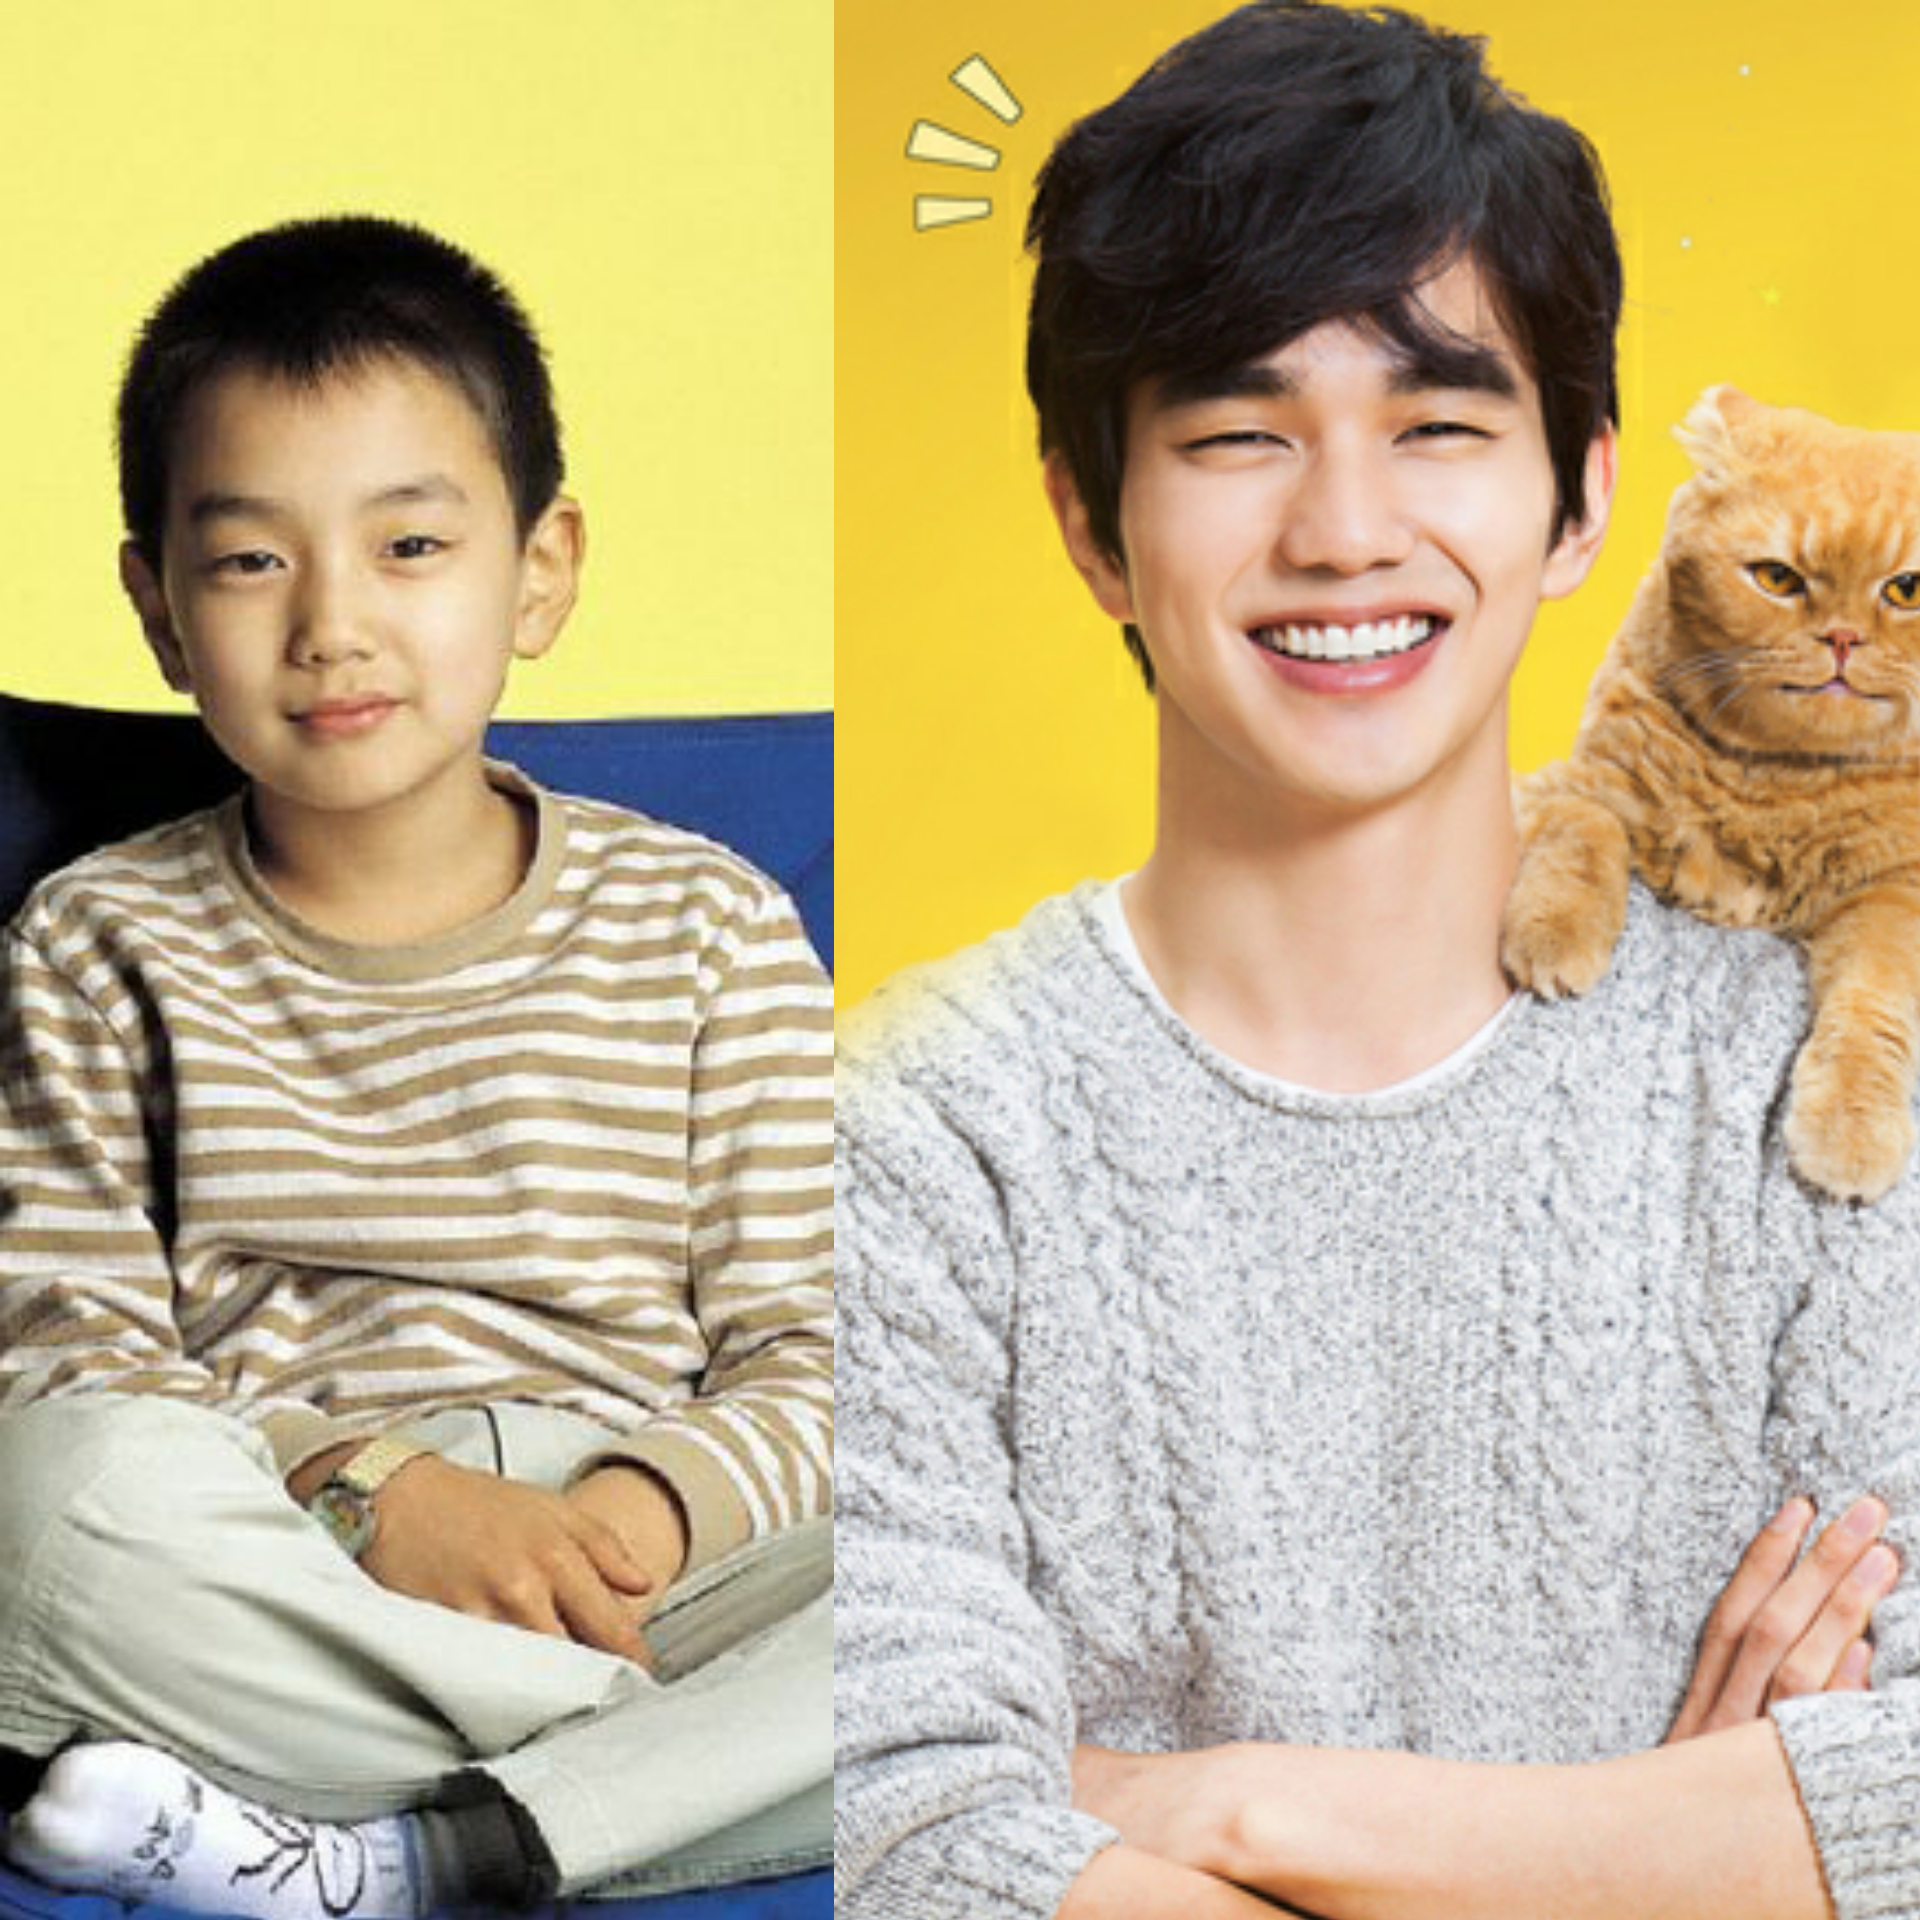 Stardom hits peoples new fave yoo seung ho kdramabuzz yoo seung ho kick started with childhood hits altavistaventures Image collections